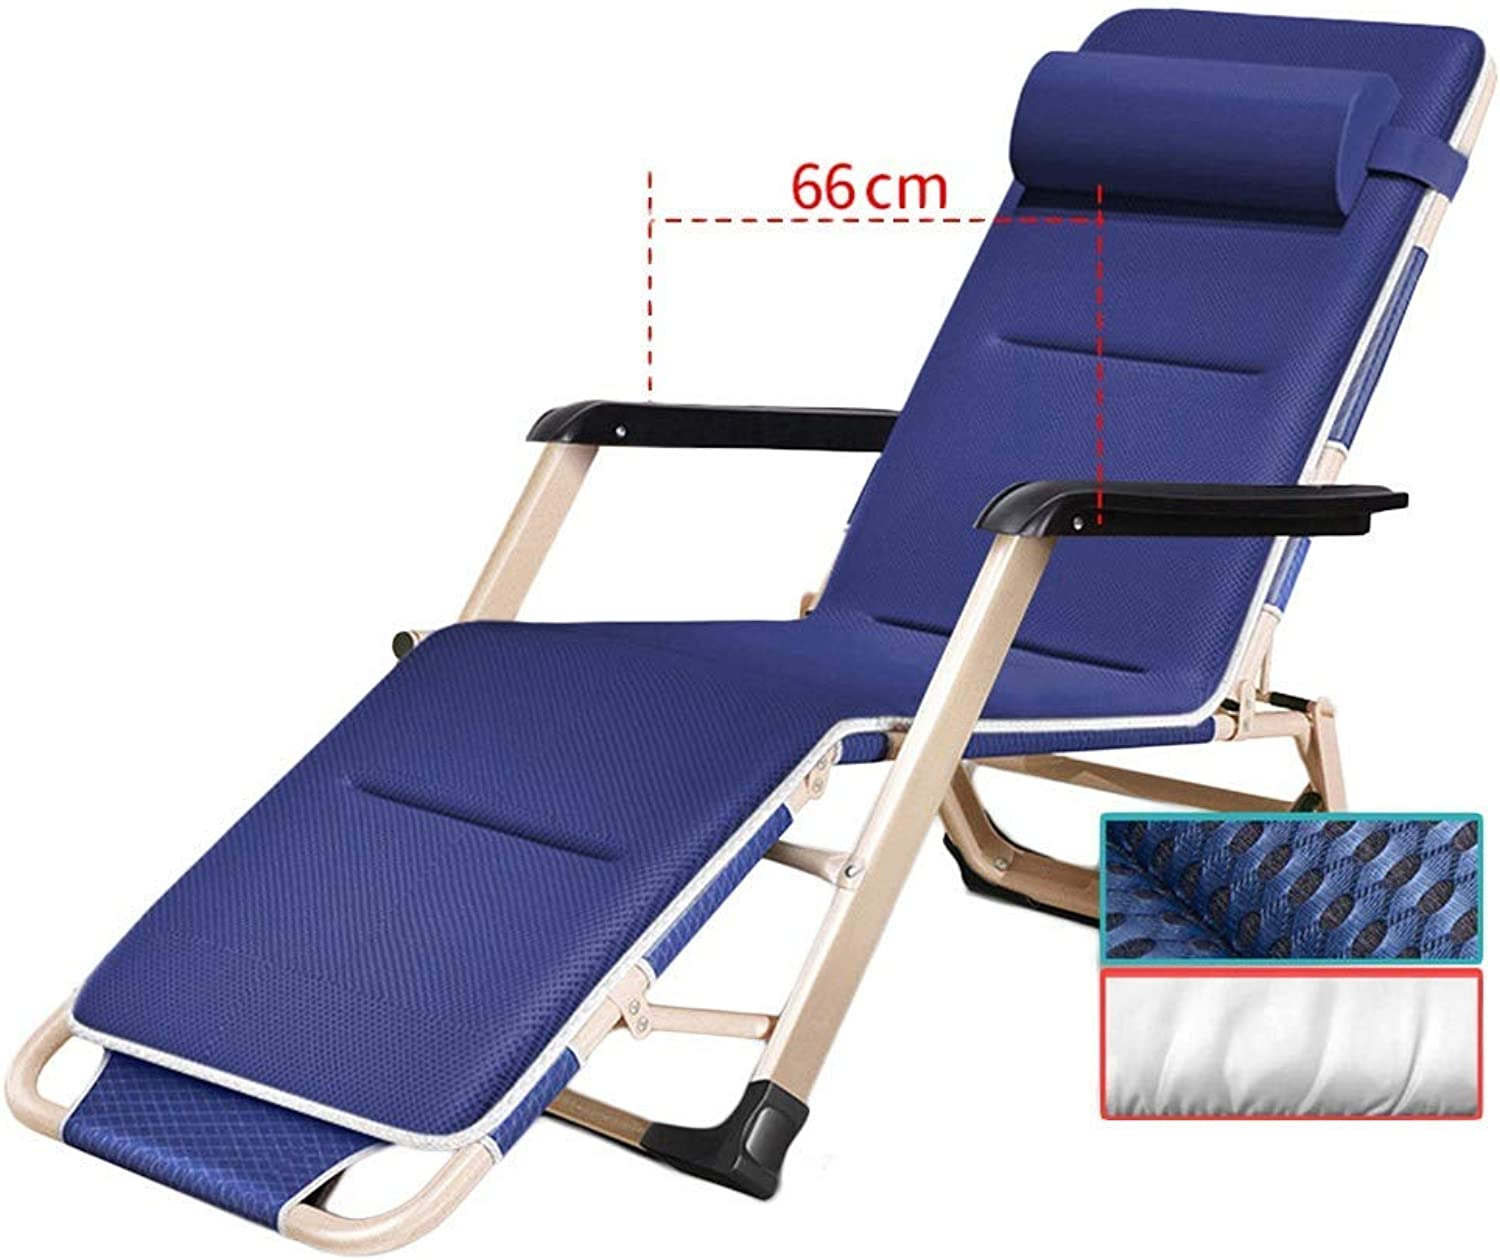 Patio Lounge Chair Portable Folding Chairs with Adjustable Pillow, Reclining for Beach, Swimming Pool, Garden, Lawn, Outdoors and Indoors, blueee, Support 240kg (color   Chair+pad),B